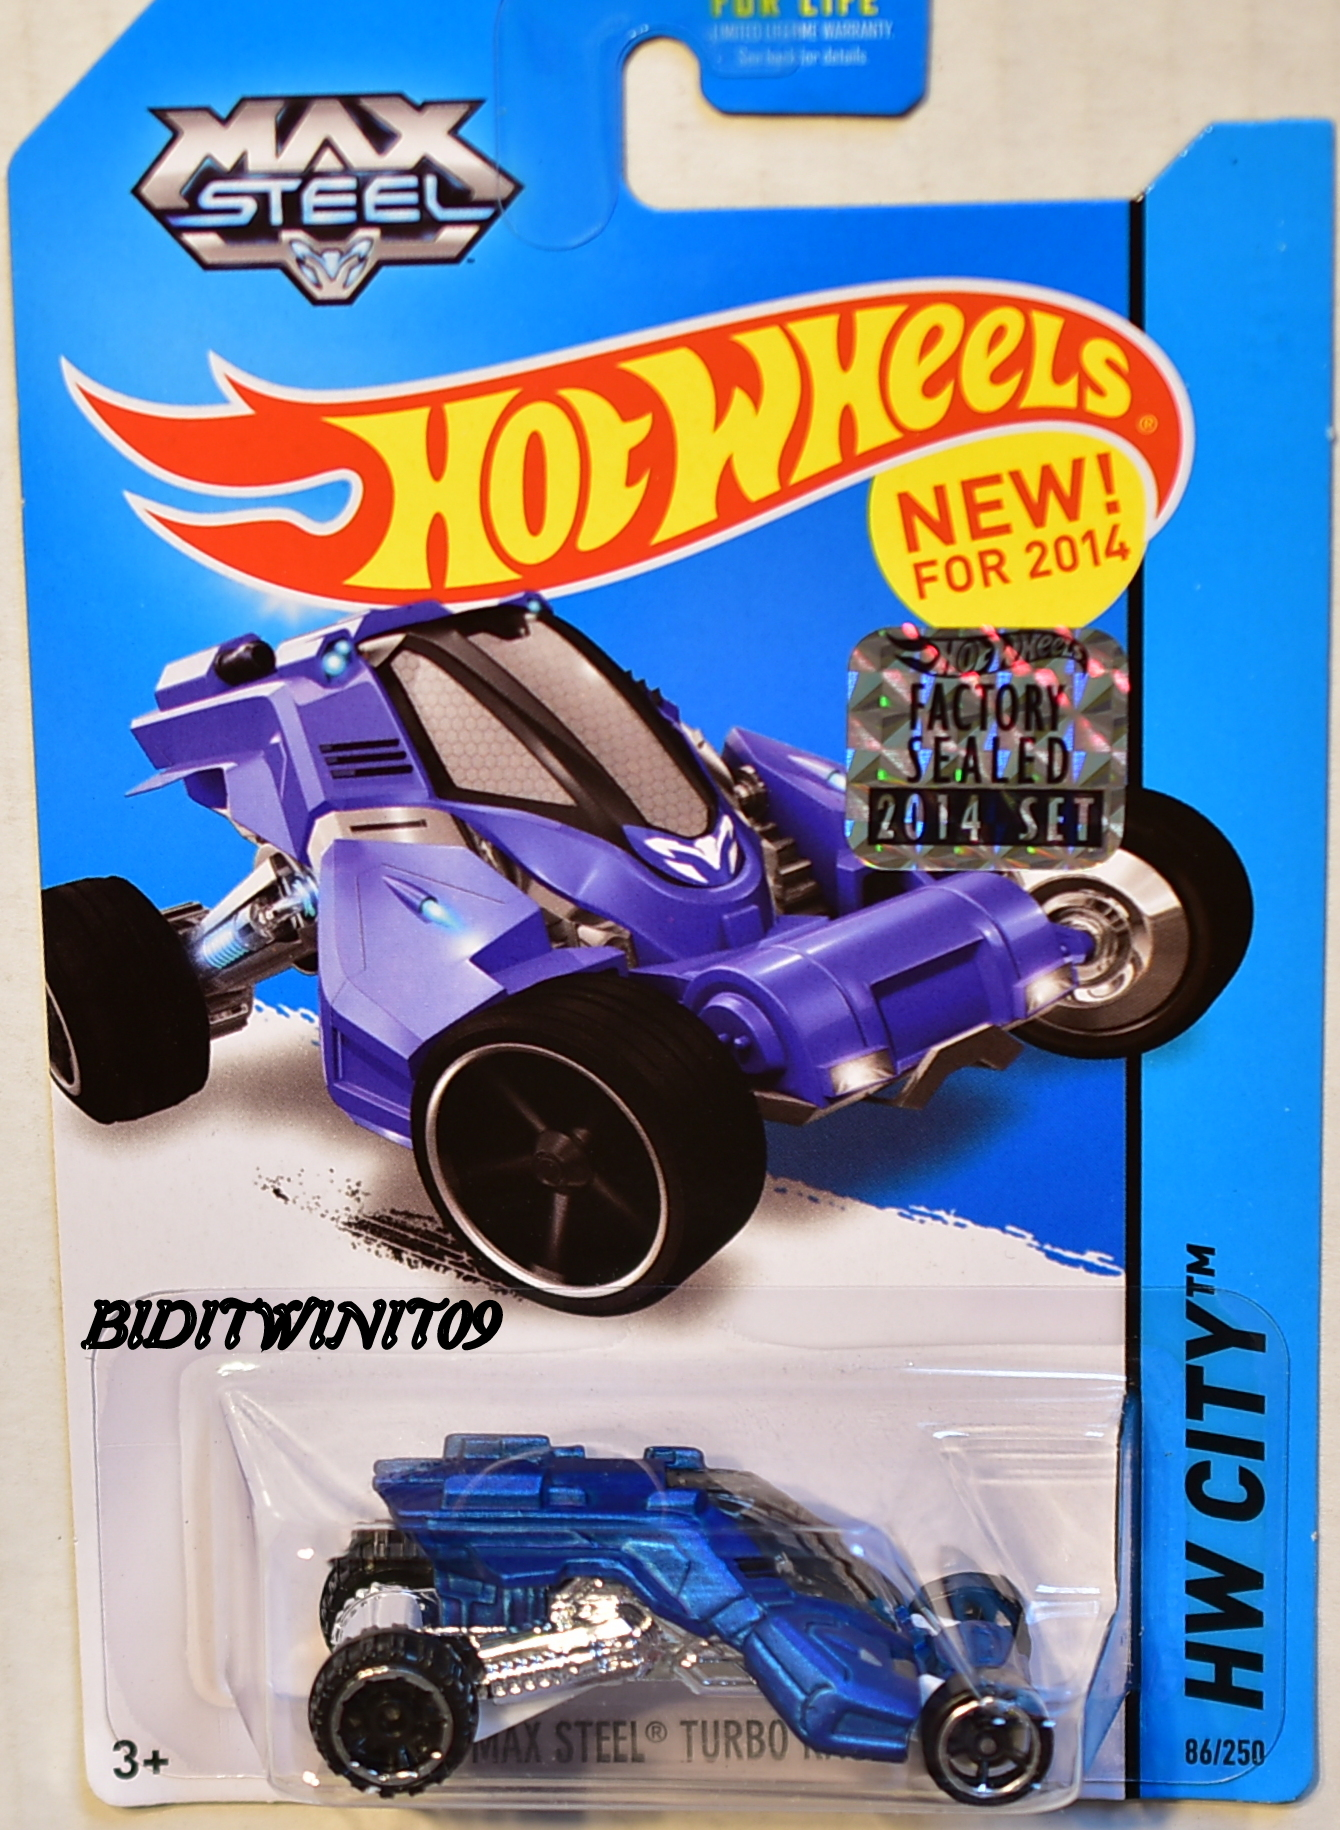 HOT WHEELS 2014 HW CITY MAX STEEL TURBO RACER FACTORY SEALED